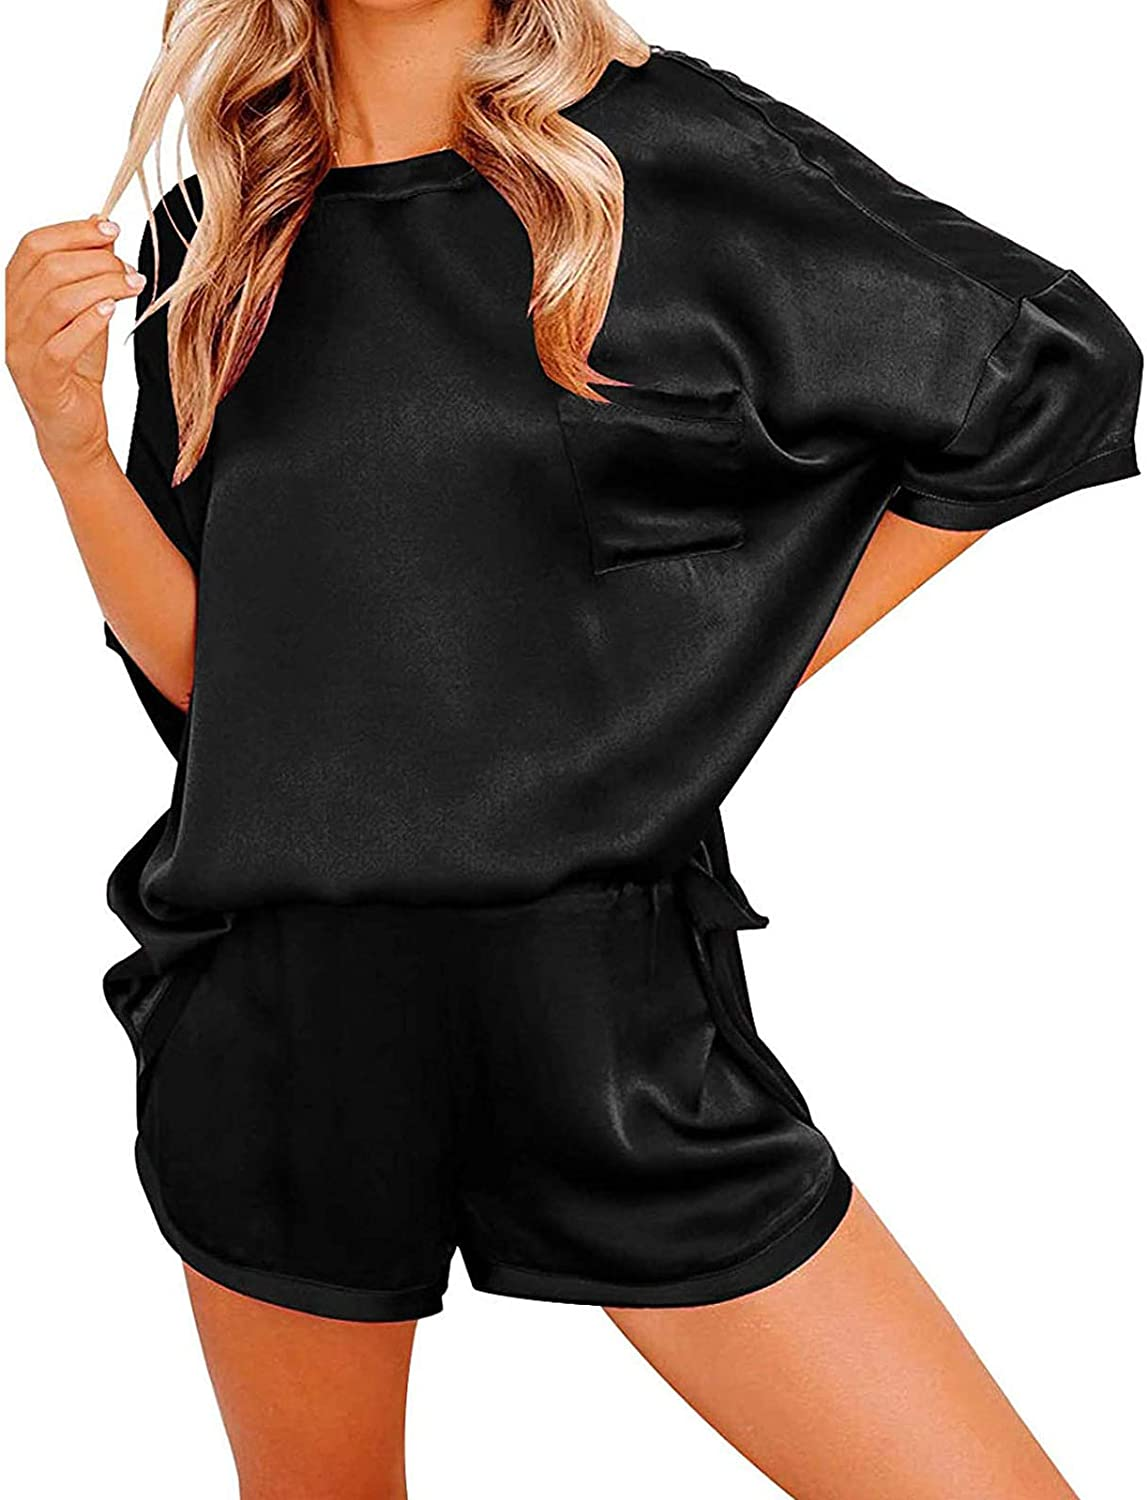 A2A Pajamas Set for Women Plus Size Two Piece Short Sleeve Silk Satin Sleepwear Lounge Wear Sexy Breathable Lingerie